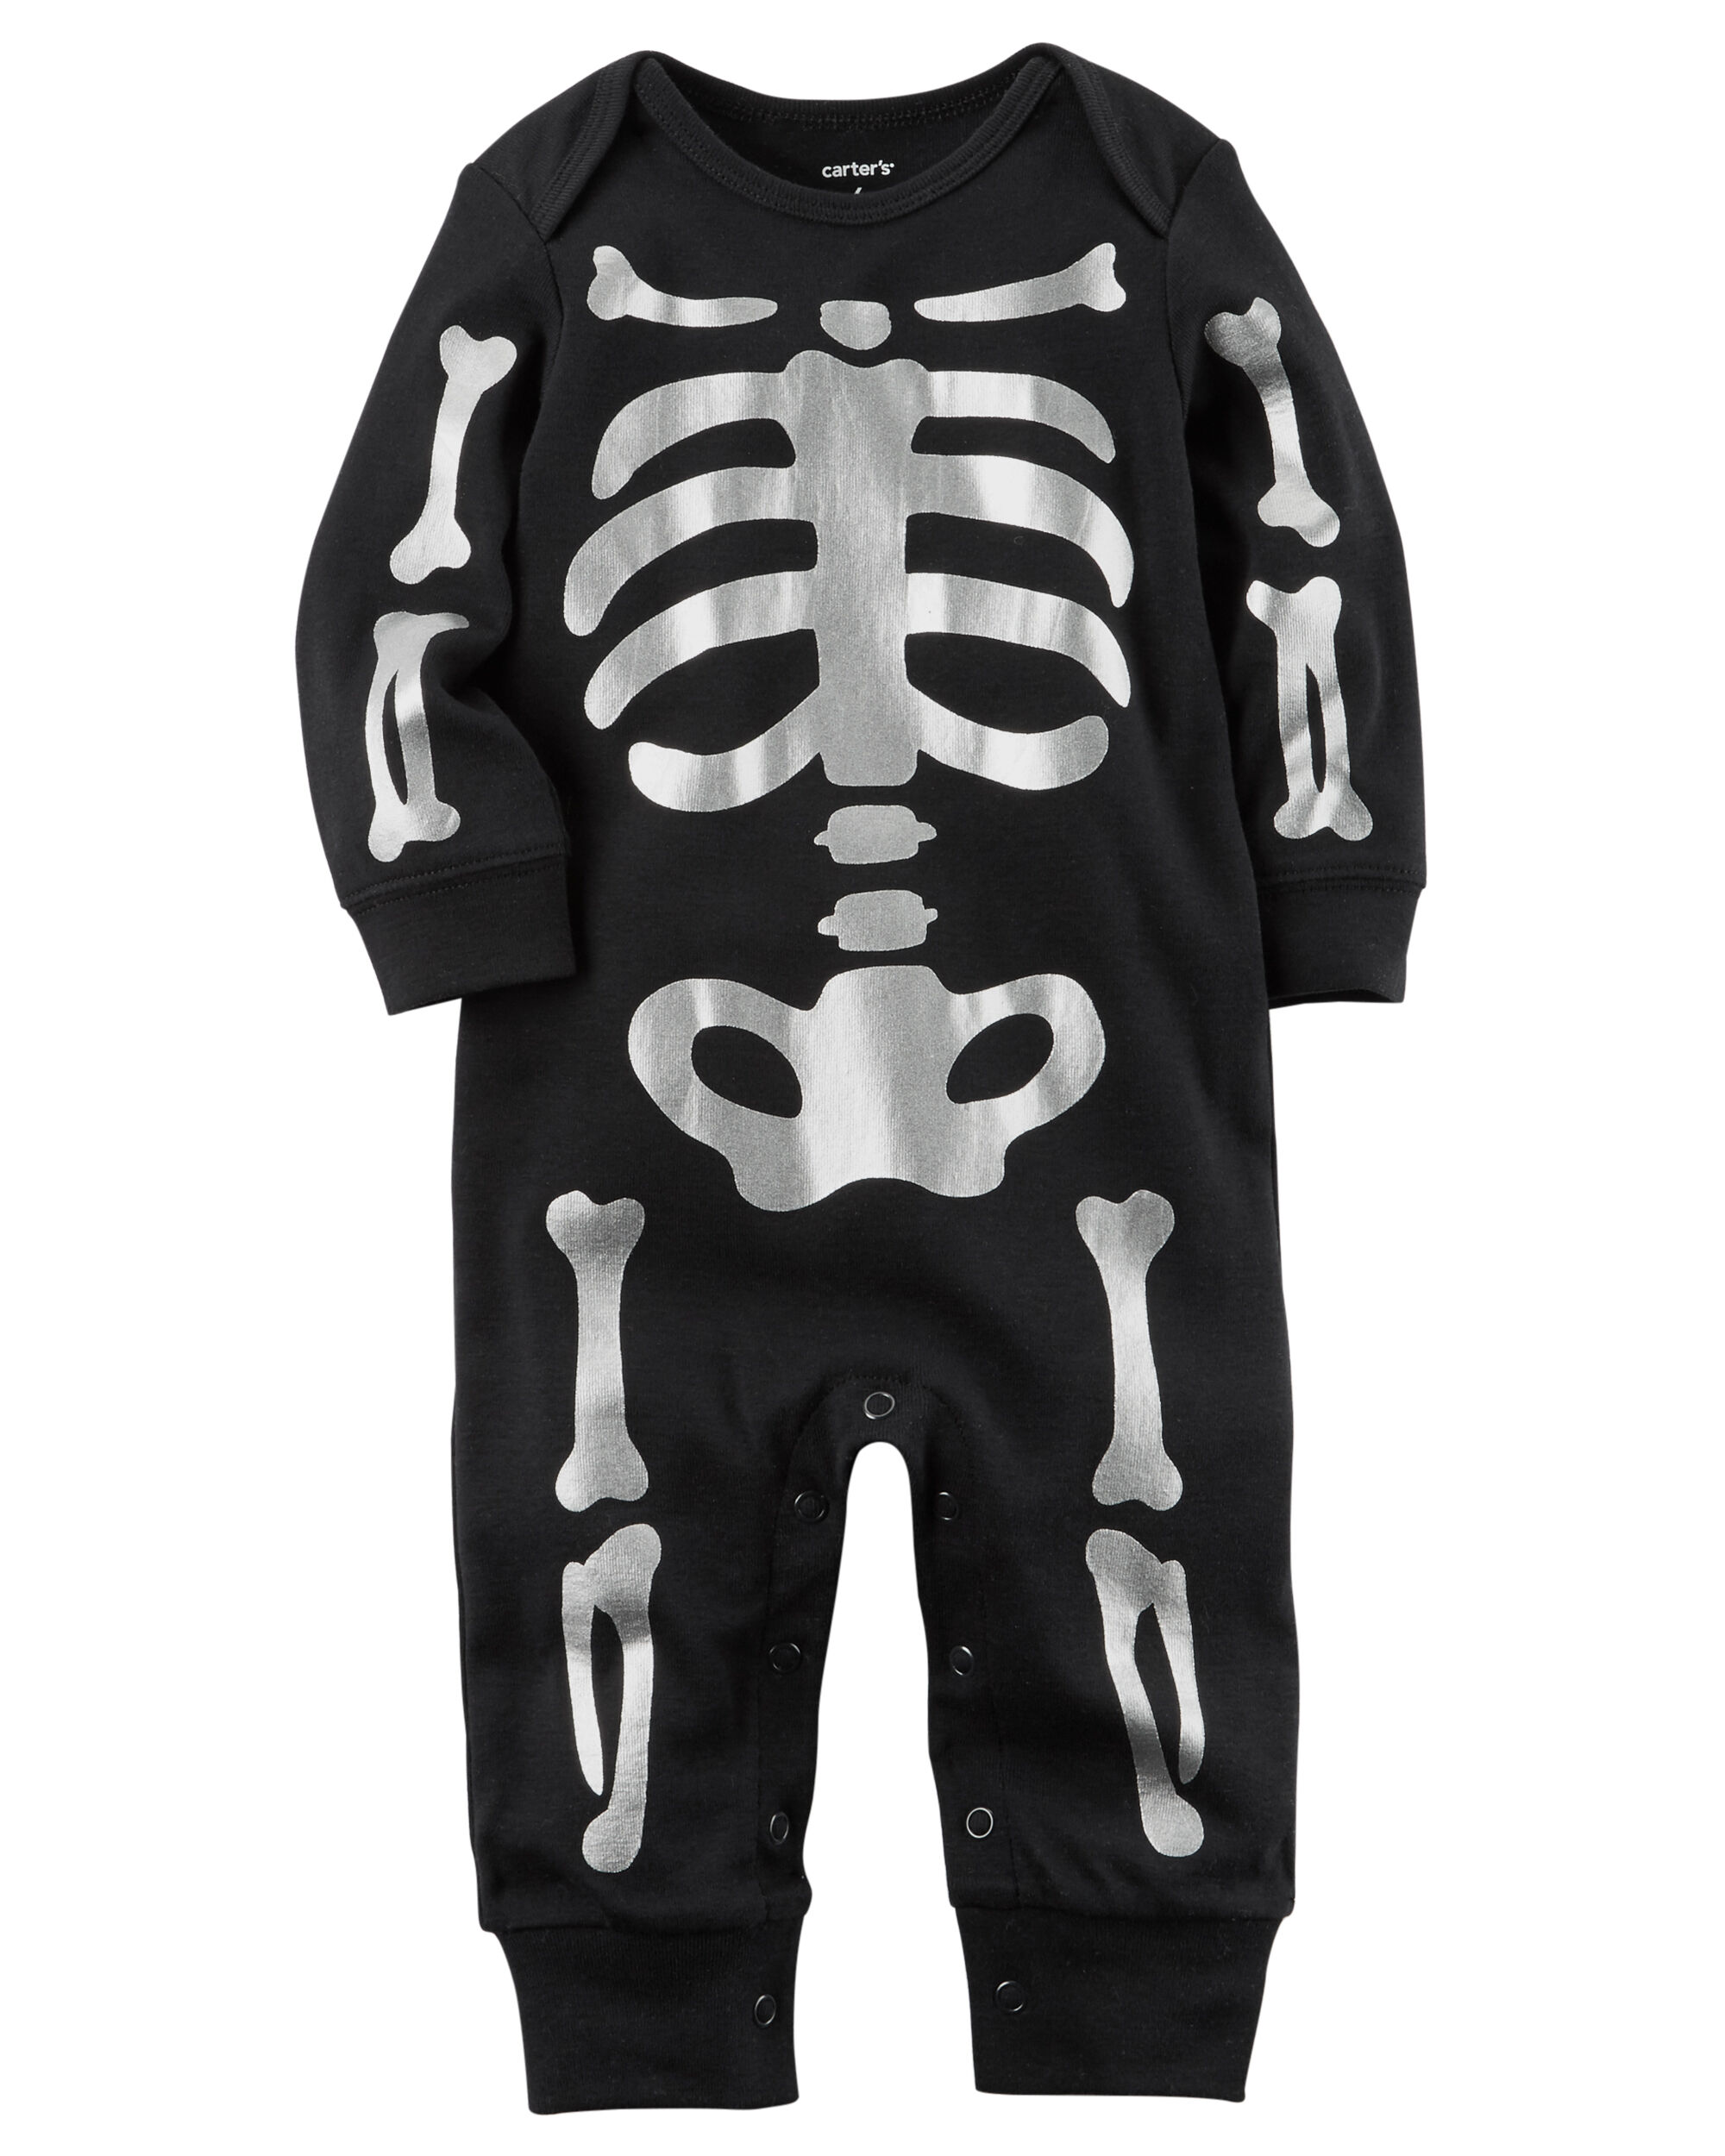 951616ffb Baby Boy Halloween Skeleton Jumpsuit